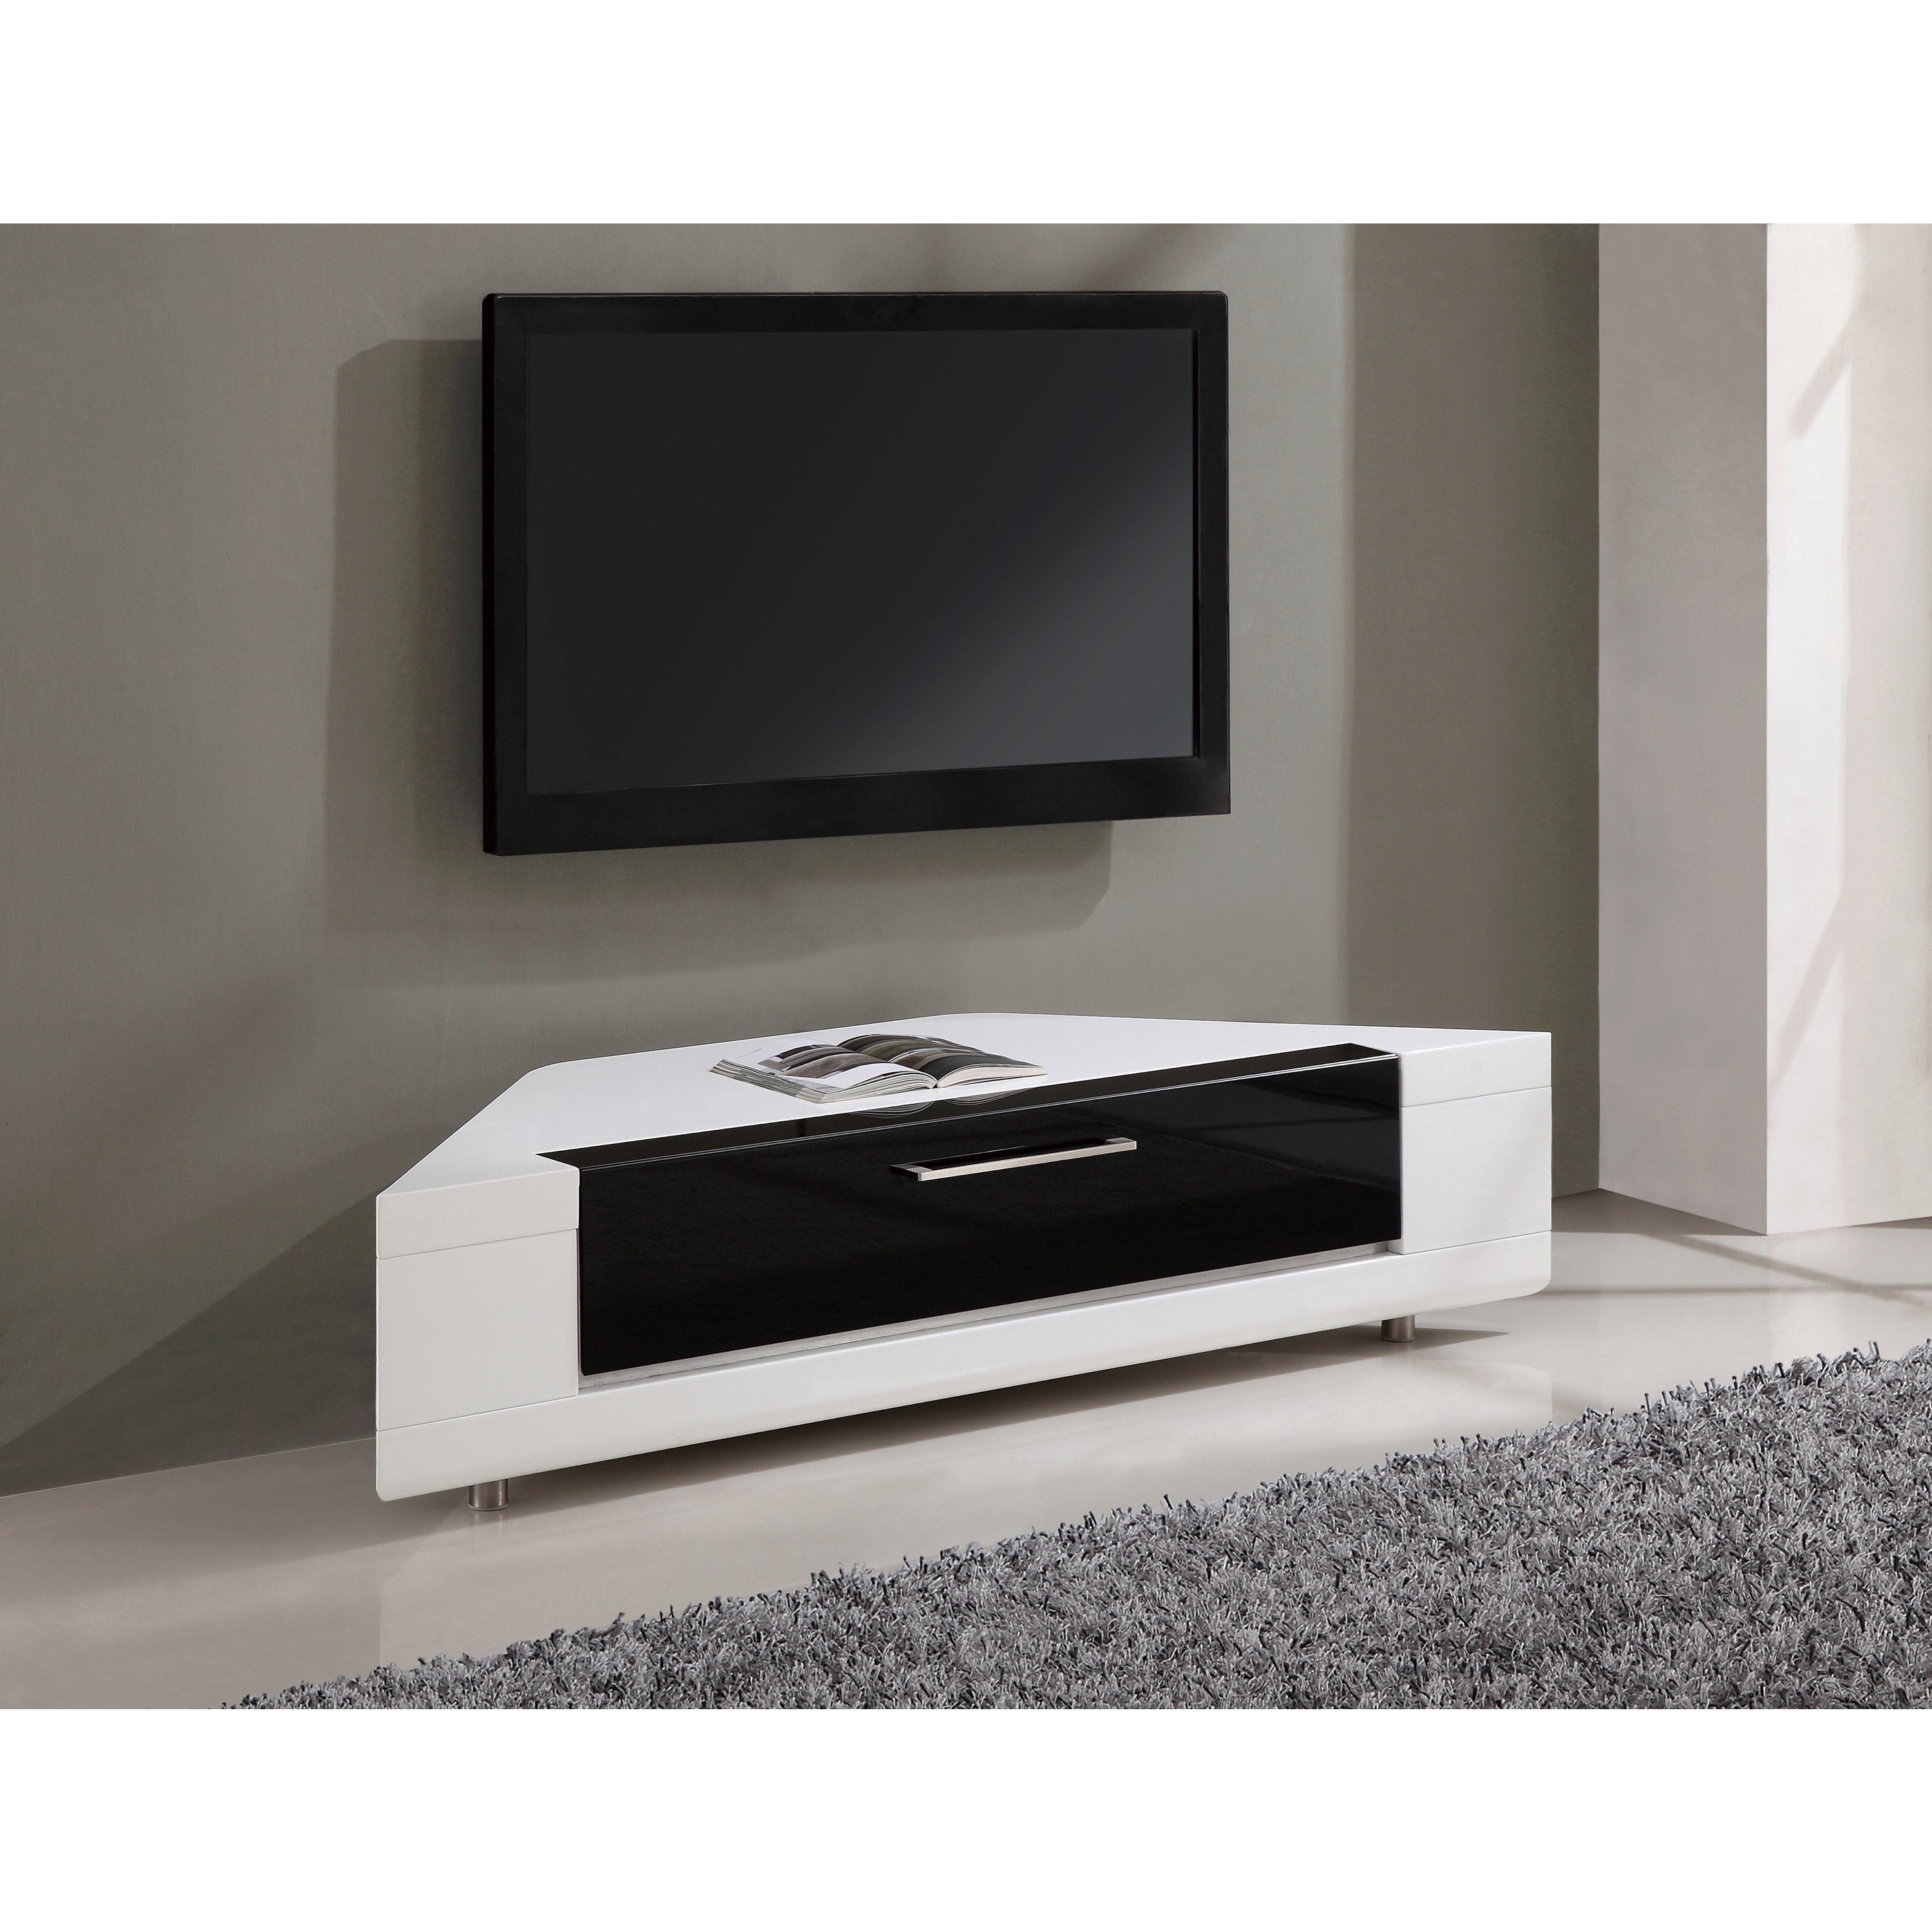 compatible furniture. Roma Remix IR-remote Compatible Corner TV Stand - Free Shipping Today Overstock 19753232 Furniture F